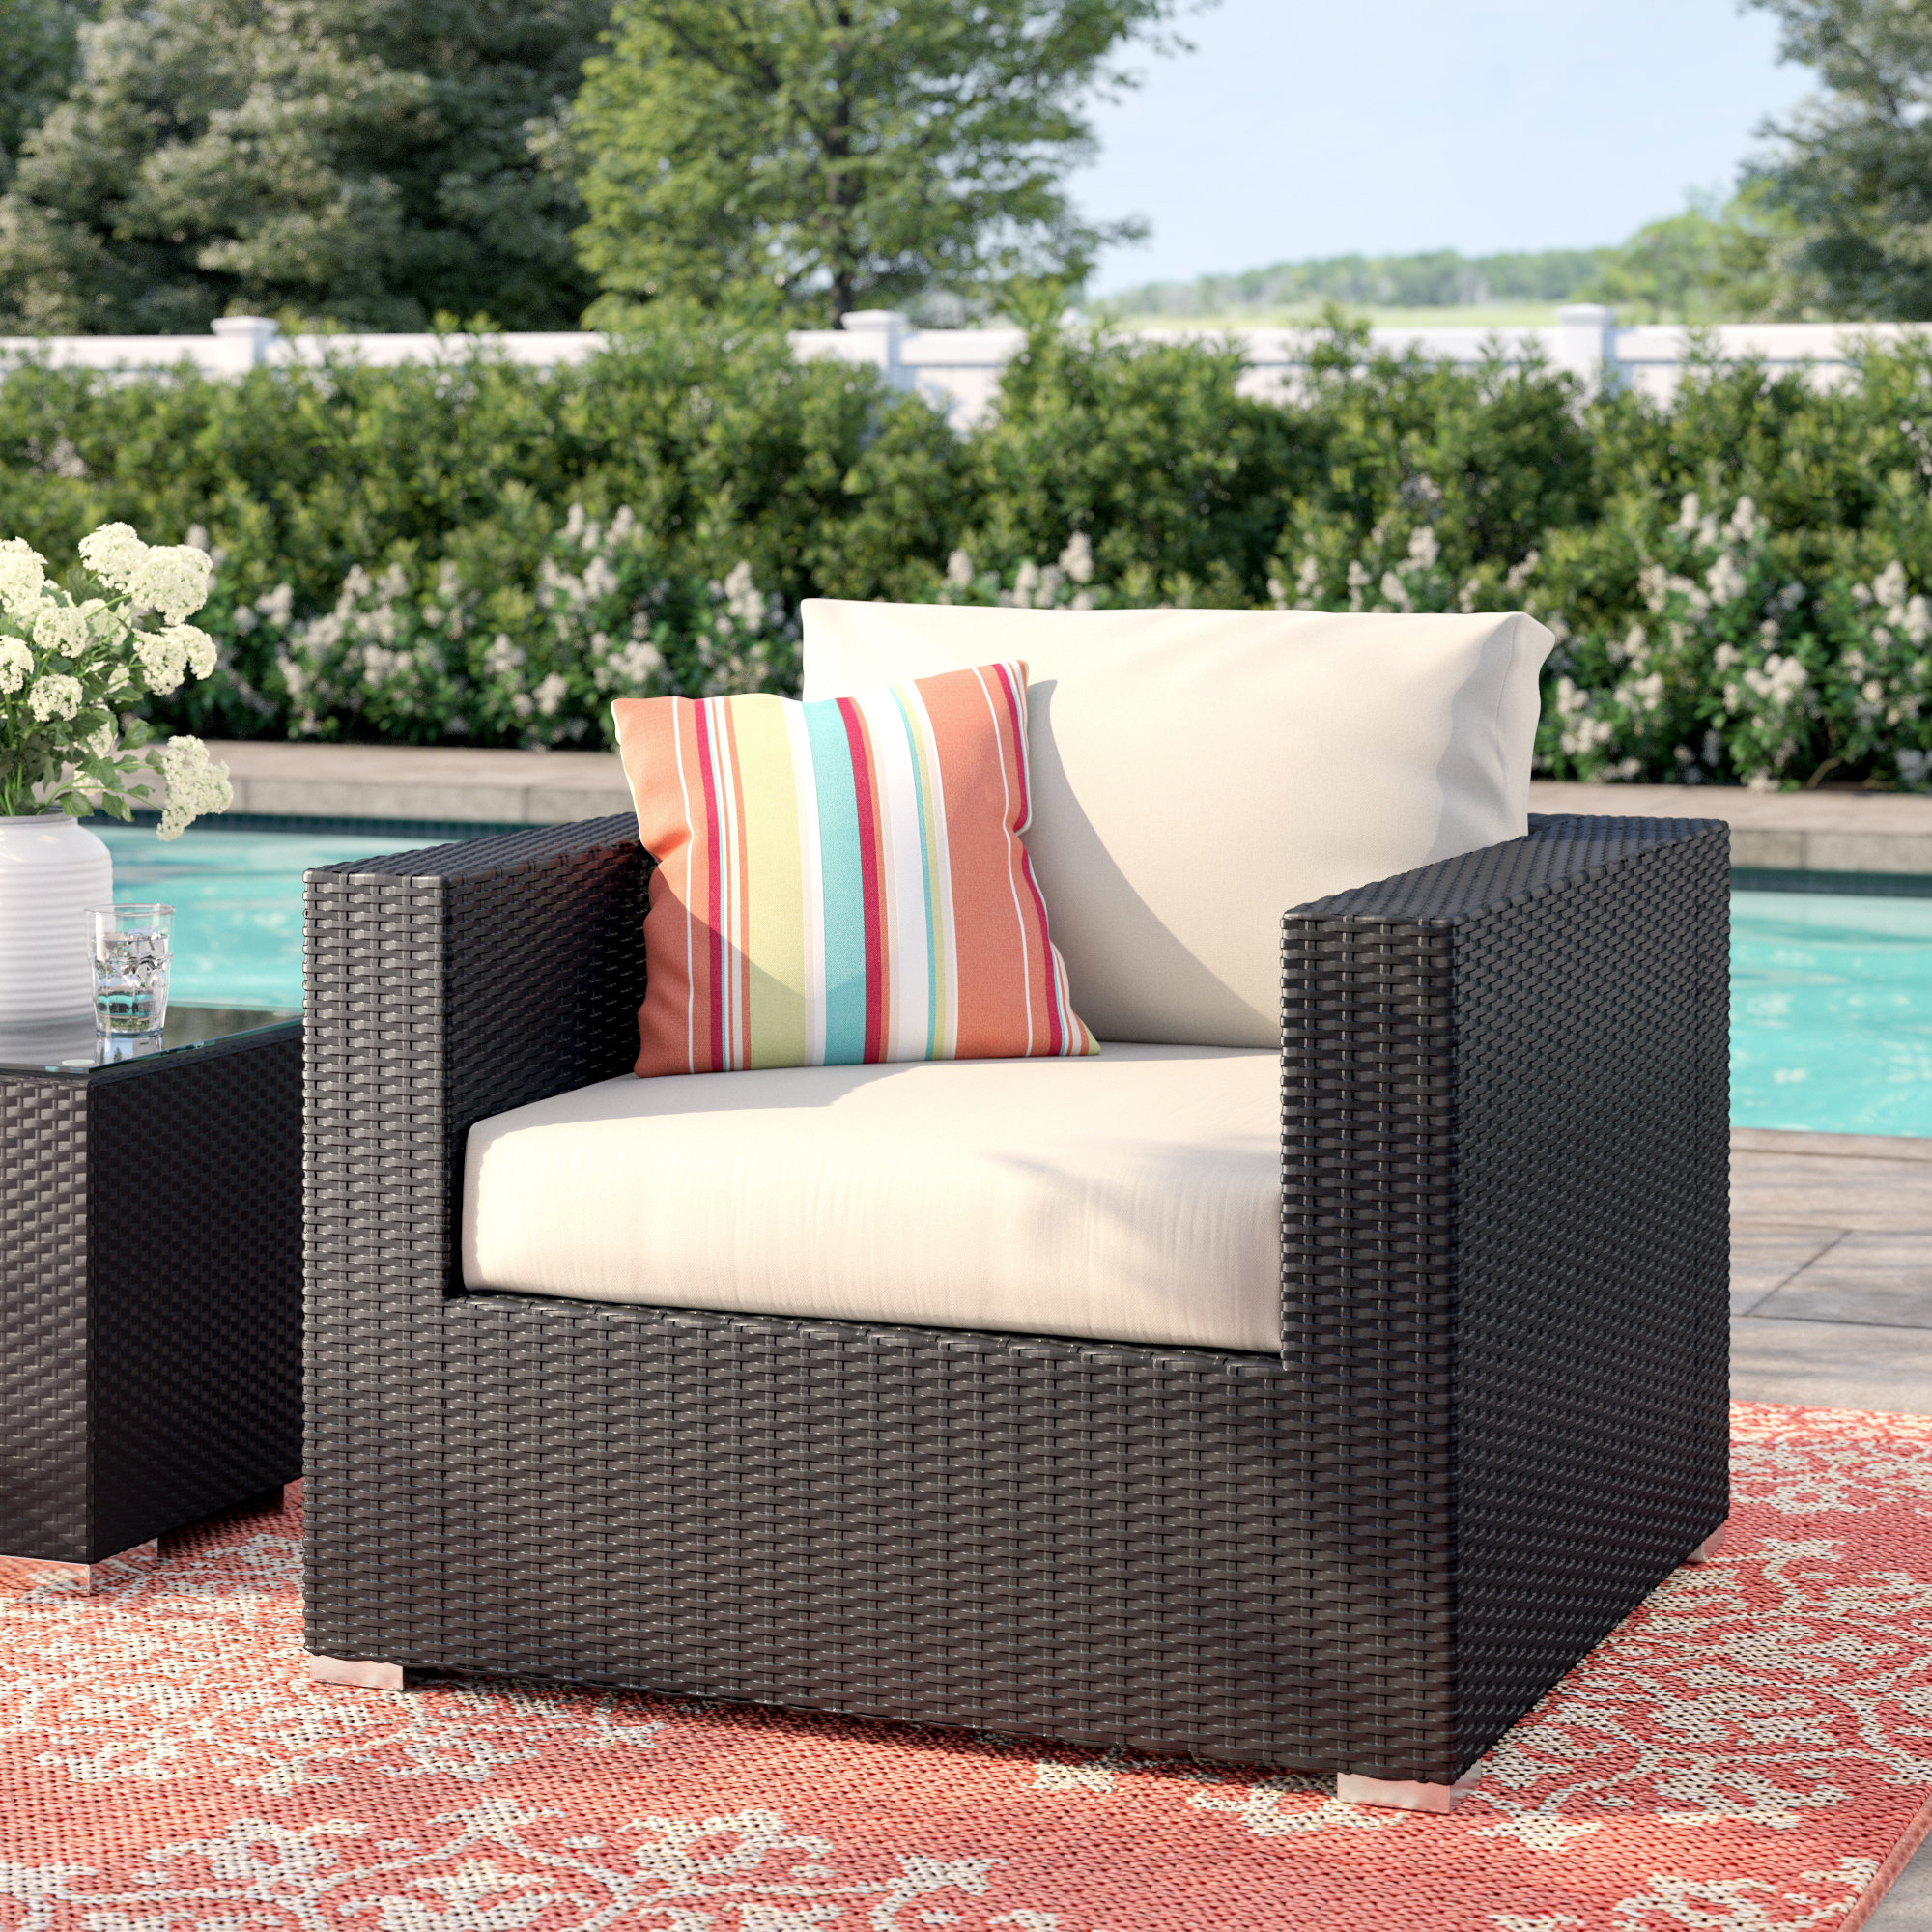 2019 Brentwood Patio Chair With Cushions Pertaining To Brentwood Patio Sofas With Cushions (View 4 of 18)